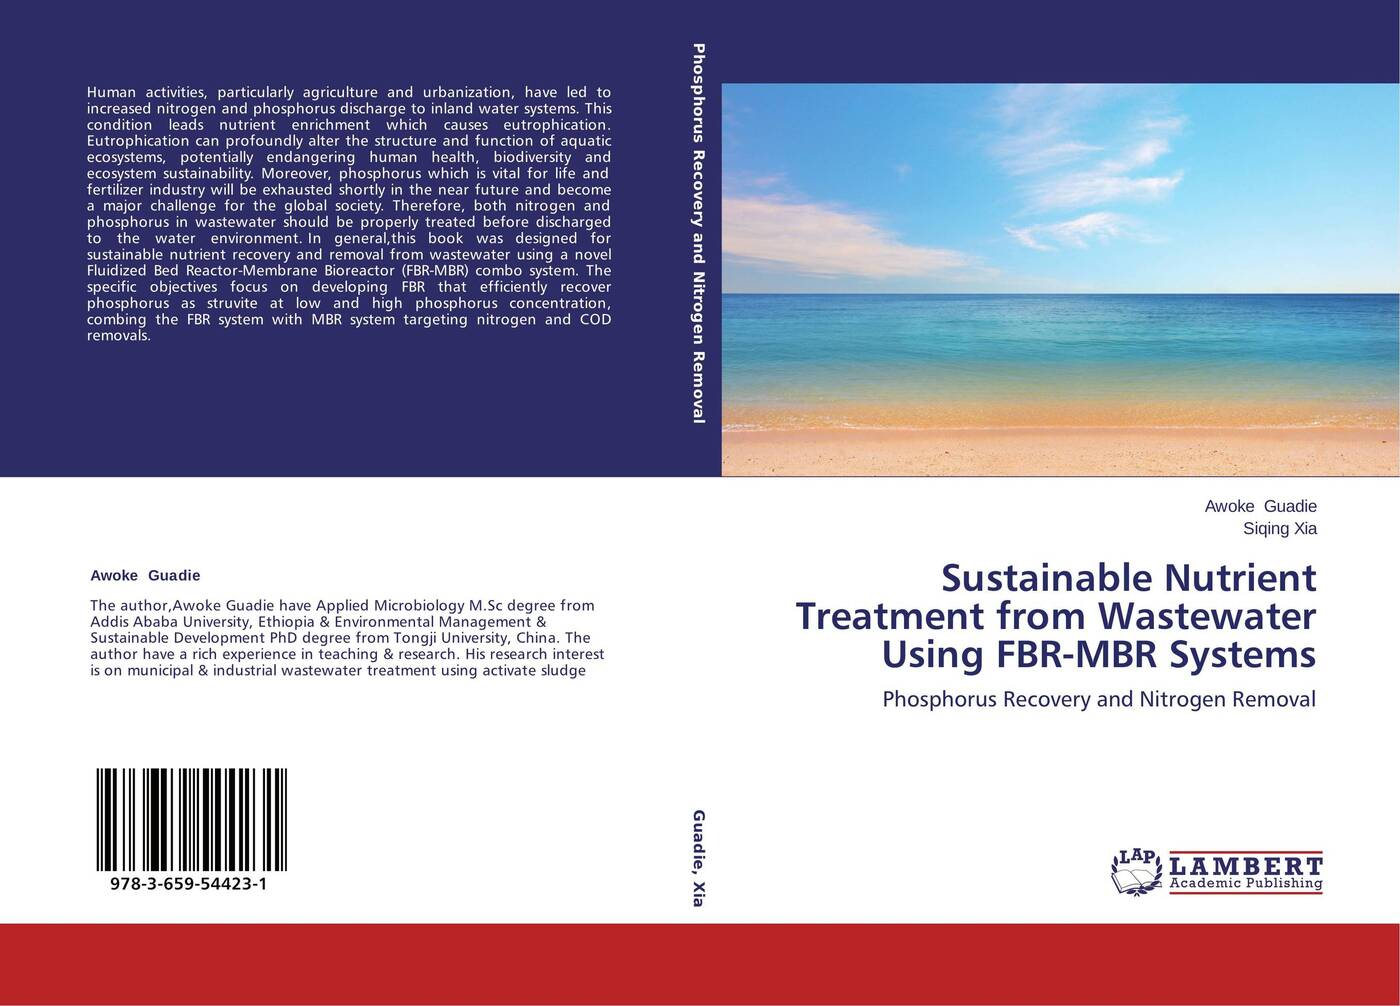 Awoke Guadie and Siqing Xia Sustainable Nutrient Treatment from Wastewater Using FBR-MBR Systems water environment federation sustainability reporting statements for wastewater systems